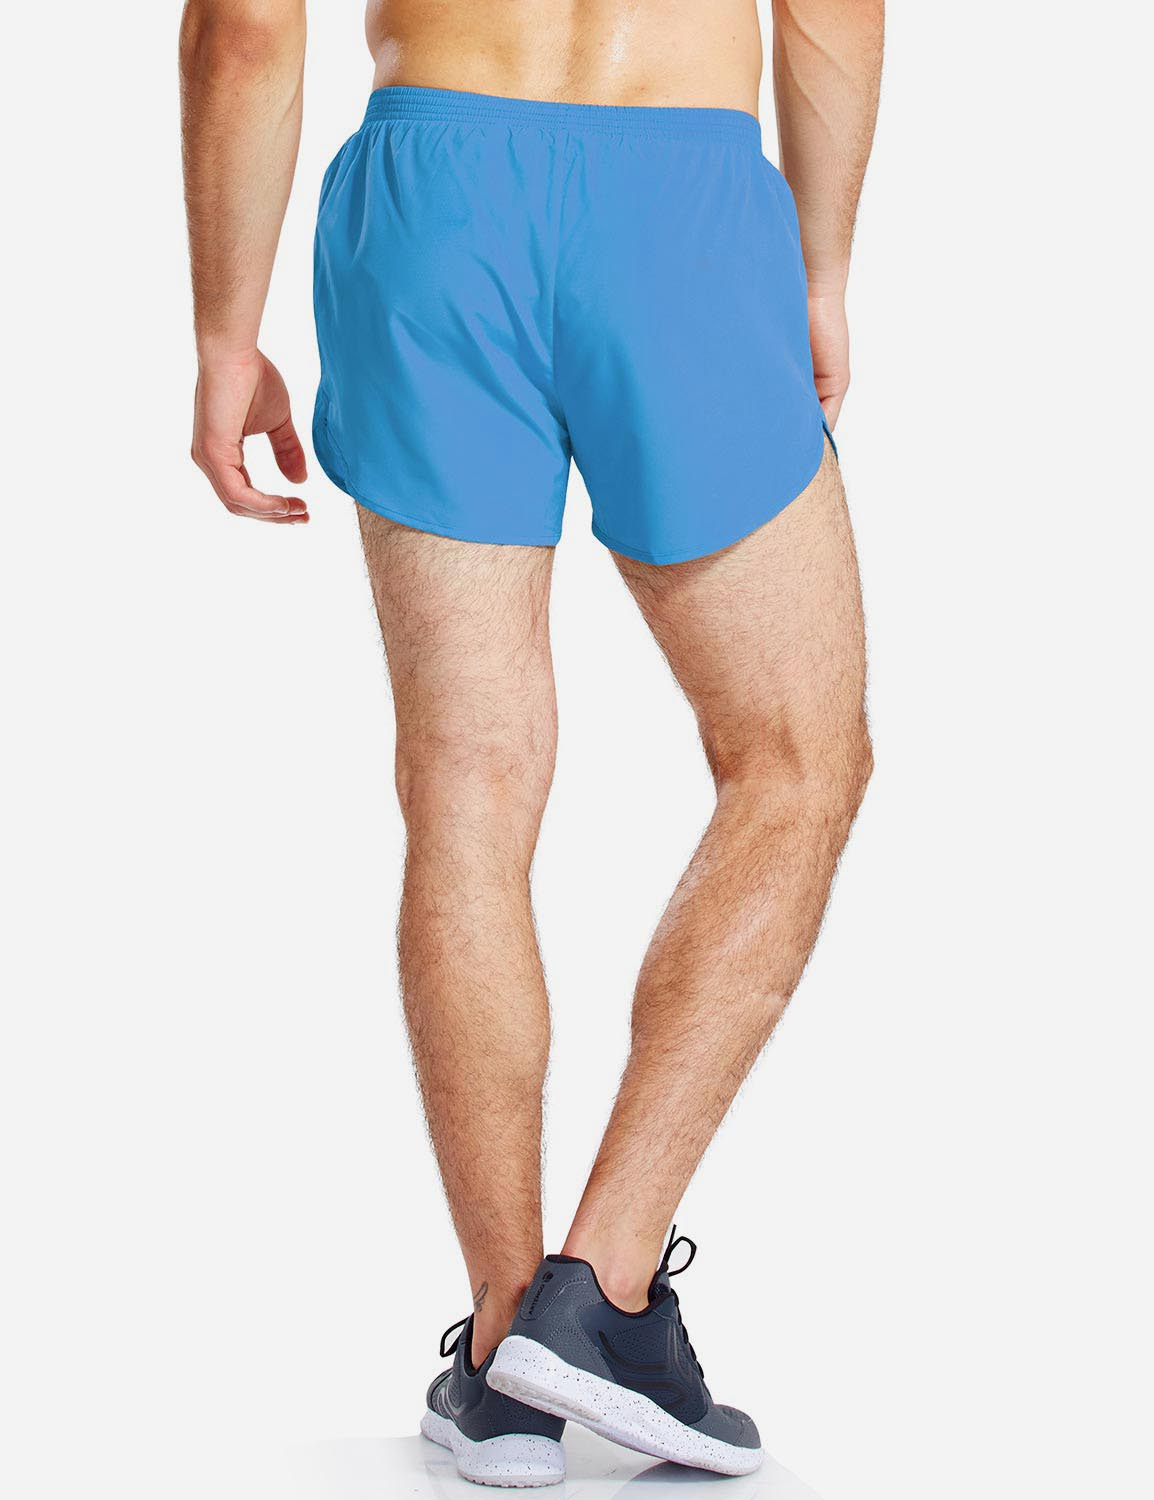 Baleaf Mens 3'' Split-Leg Basic Running Shorts light blue back